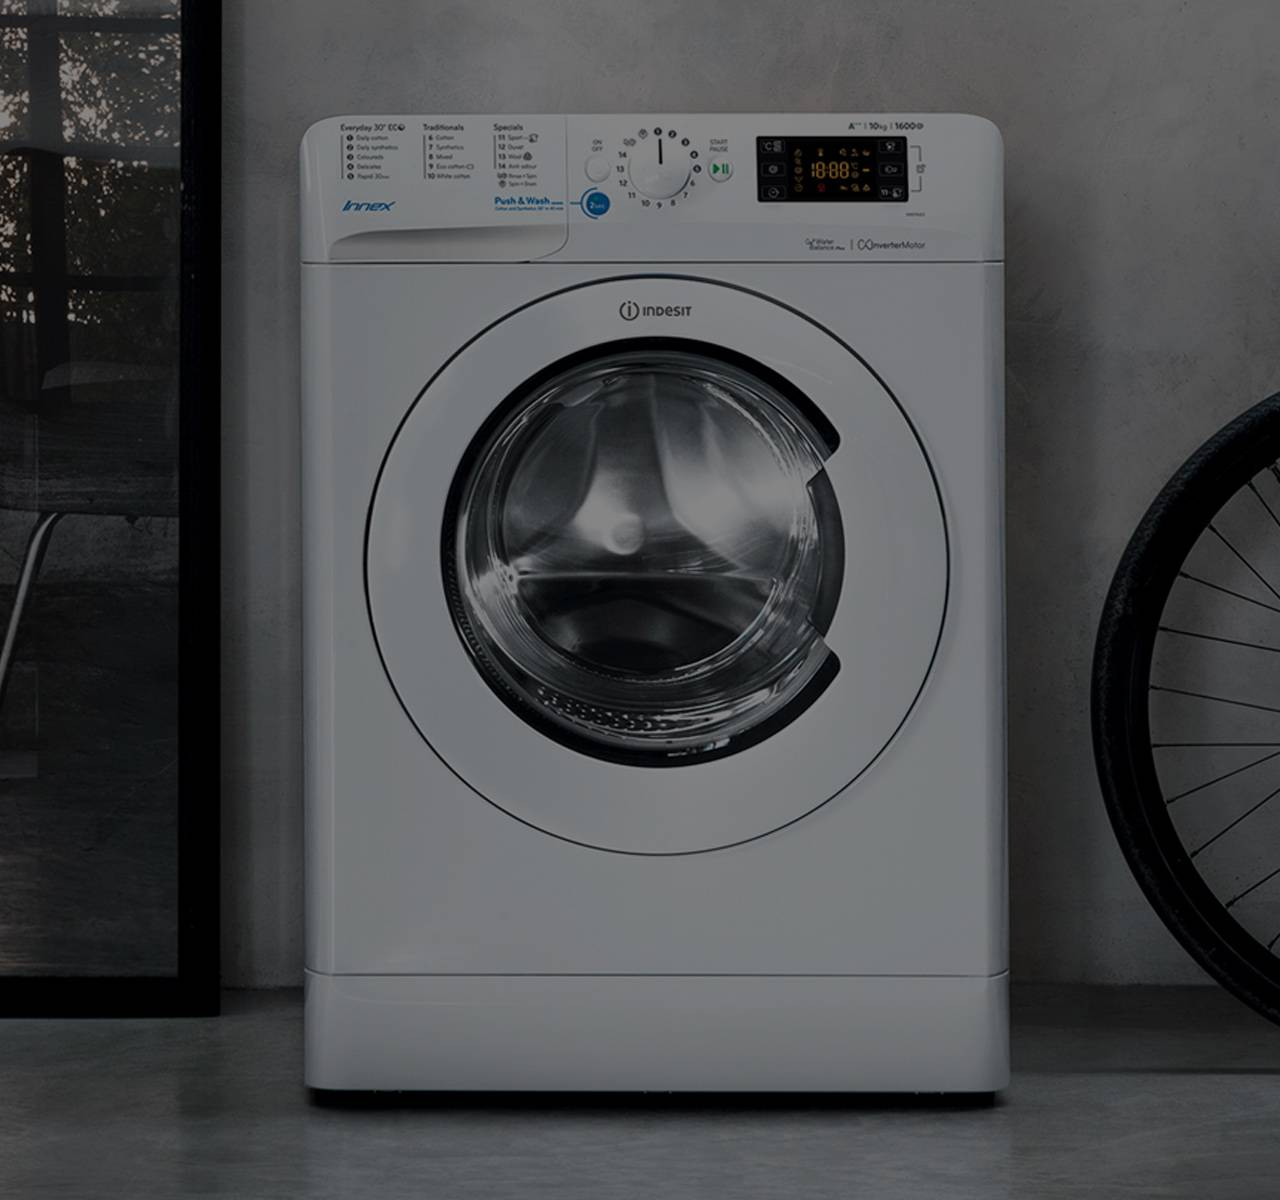 Indesit Affordable Reliable Kitchen Home Appliances Learn More About Your Washer Or Dryer To Order Parts Click Here 2 Seconds 1 Press